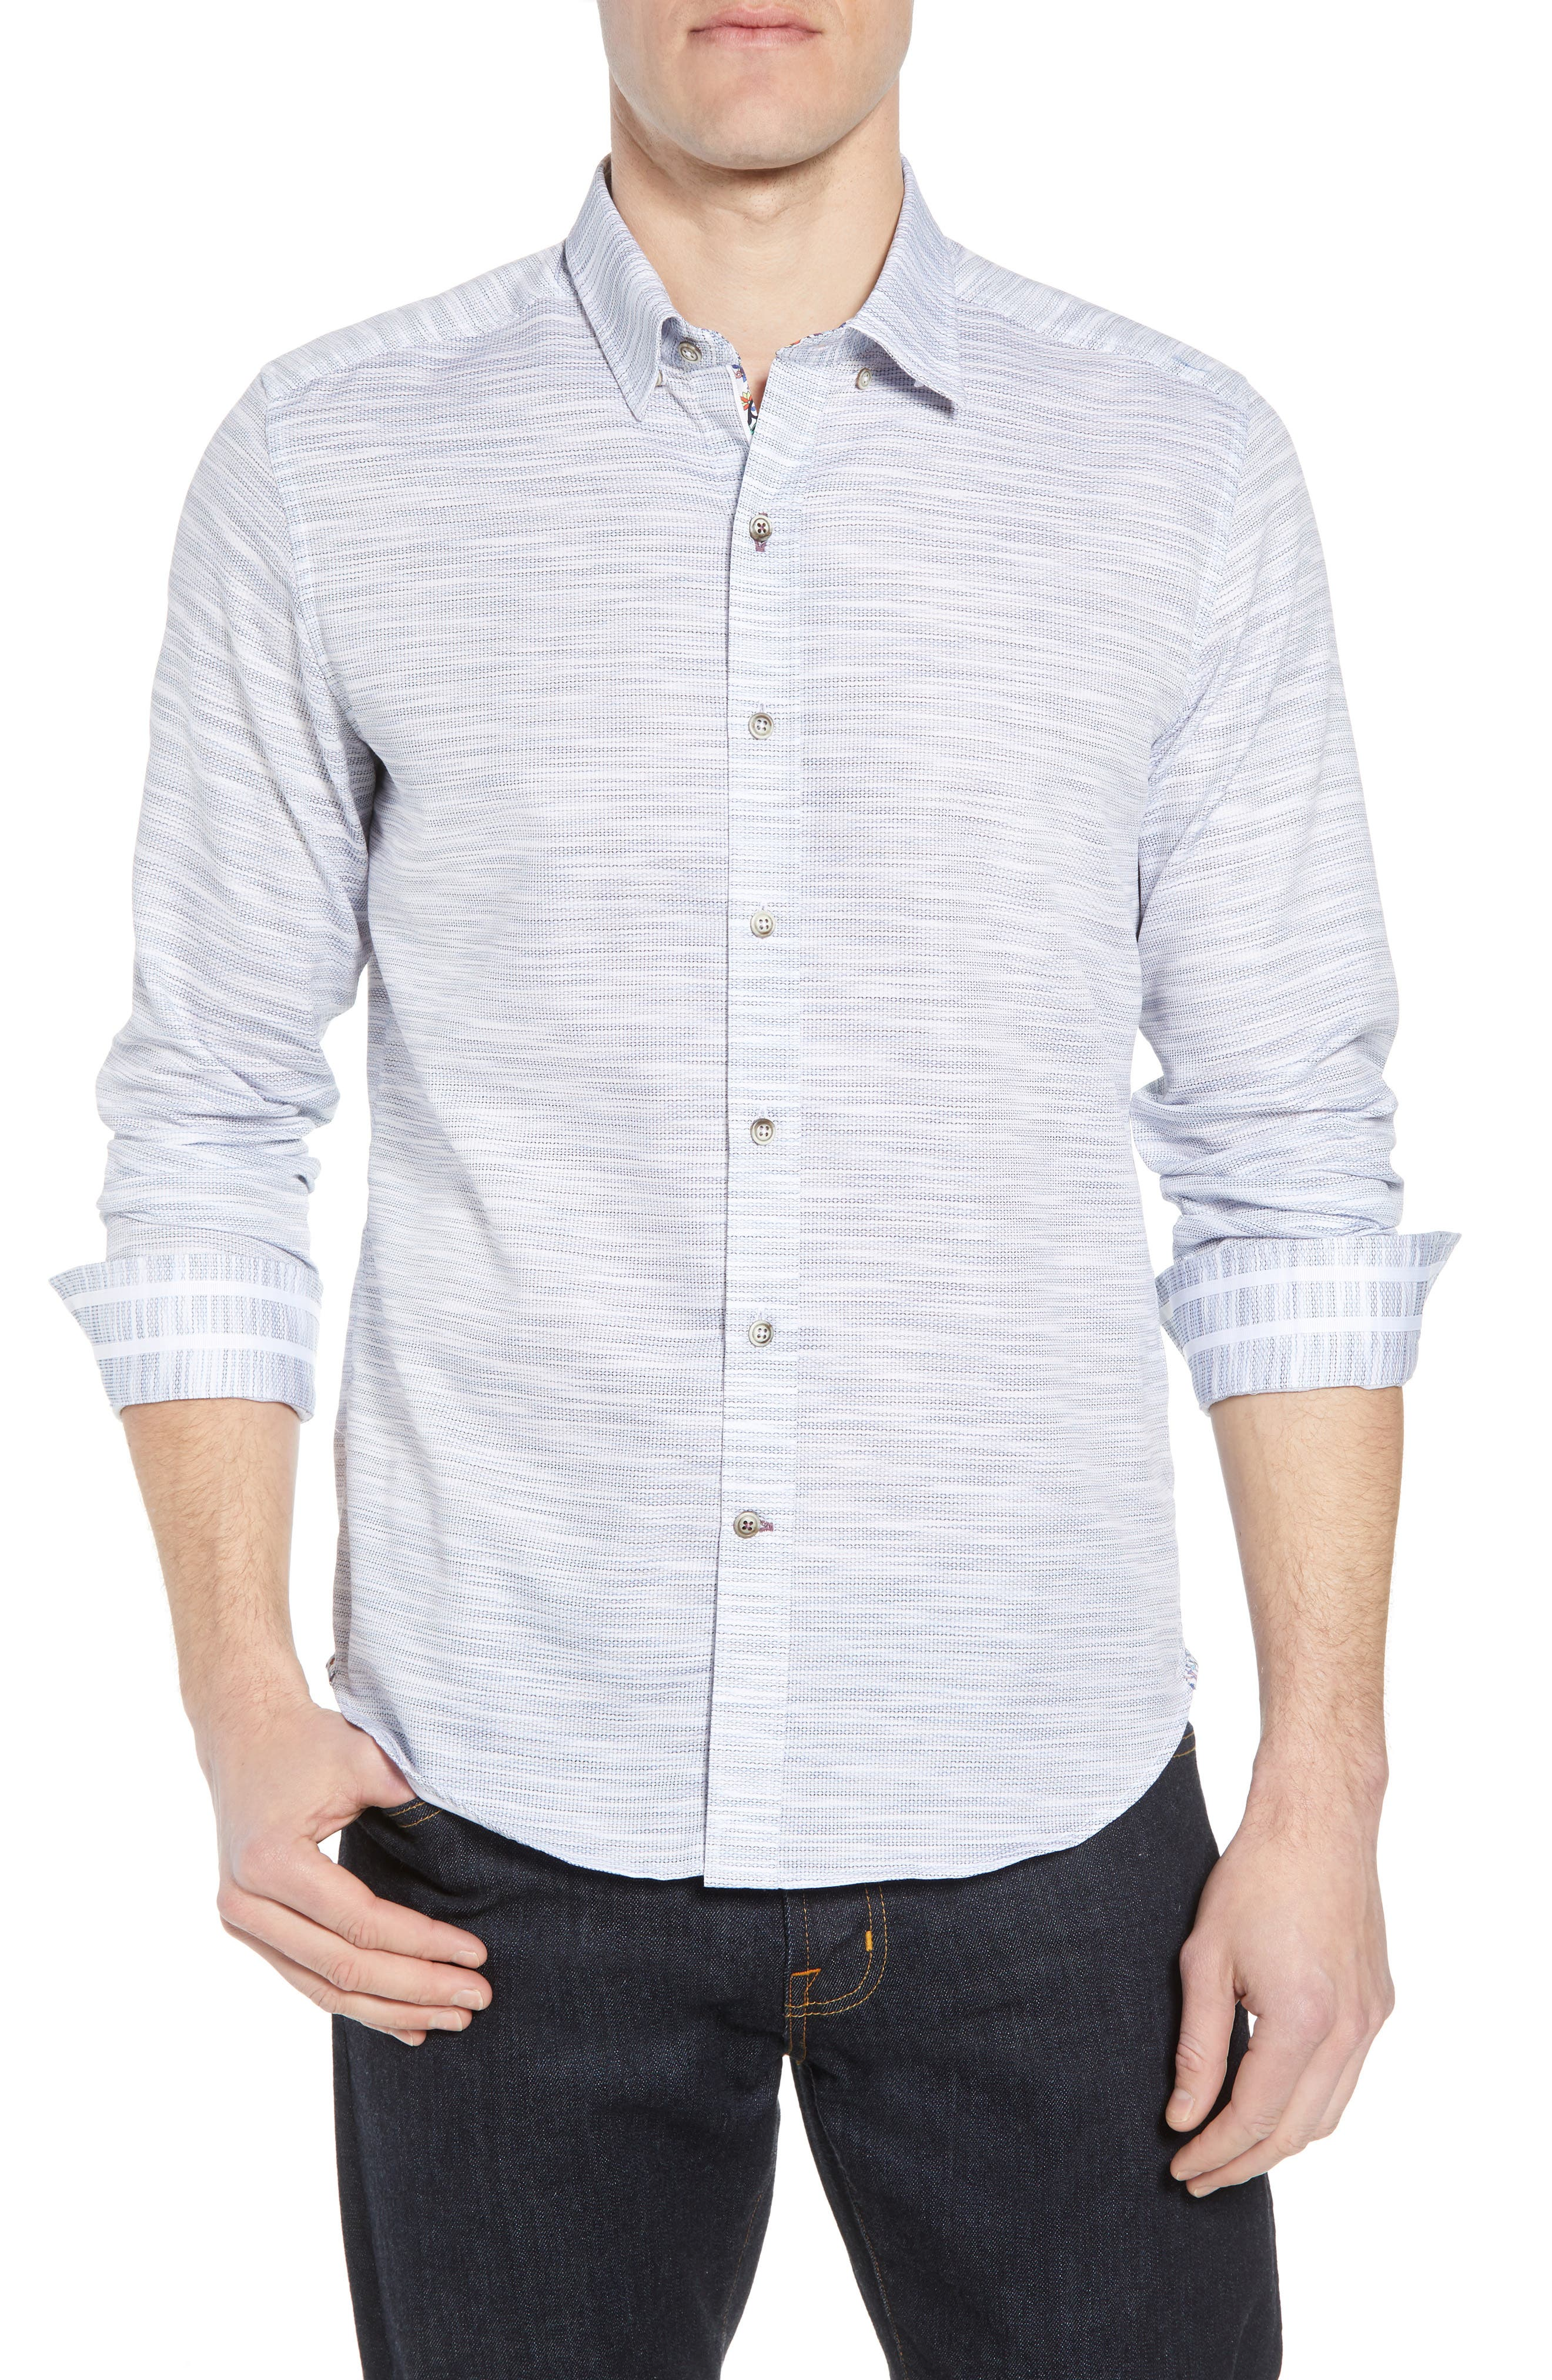 Tully Tailored Fit Sport Shirt,                             Main thumbnail 1, color,                             WHITE